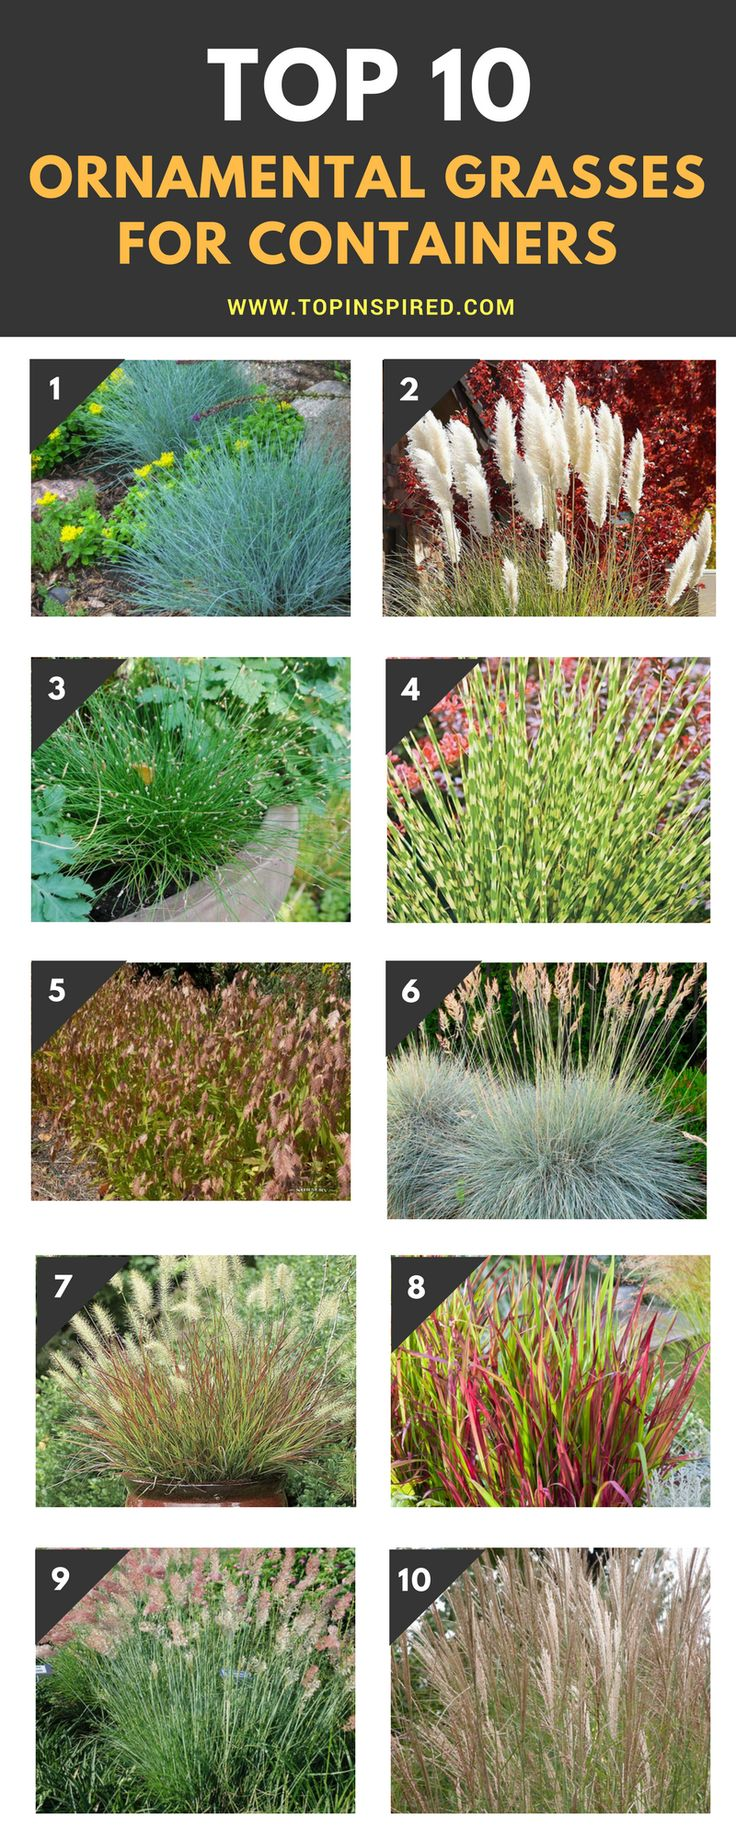 536 best gardening ornamental grasses images on for Ornamental grass in containers for privacy